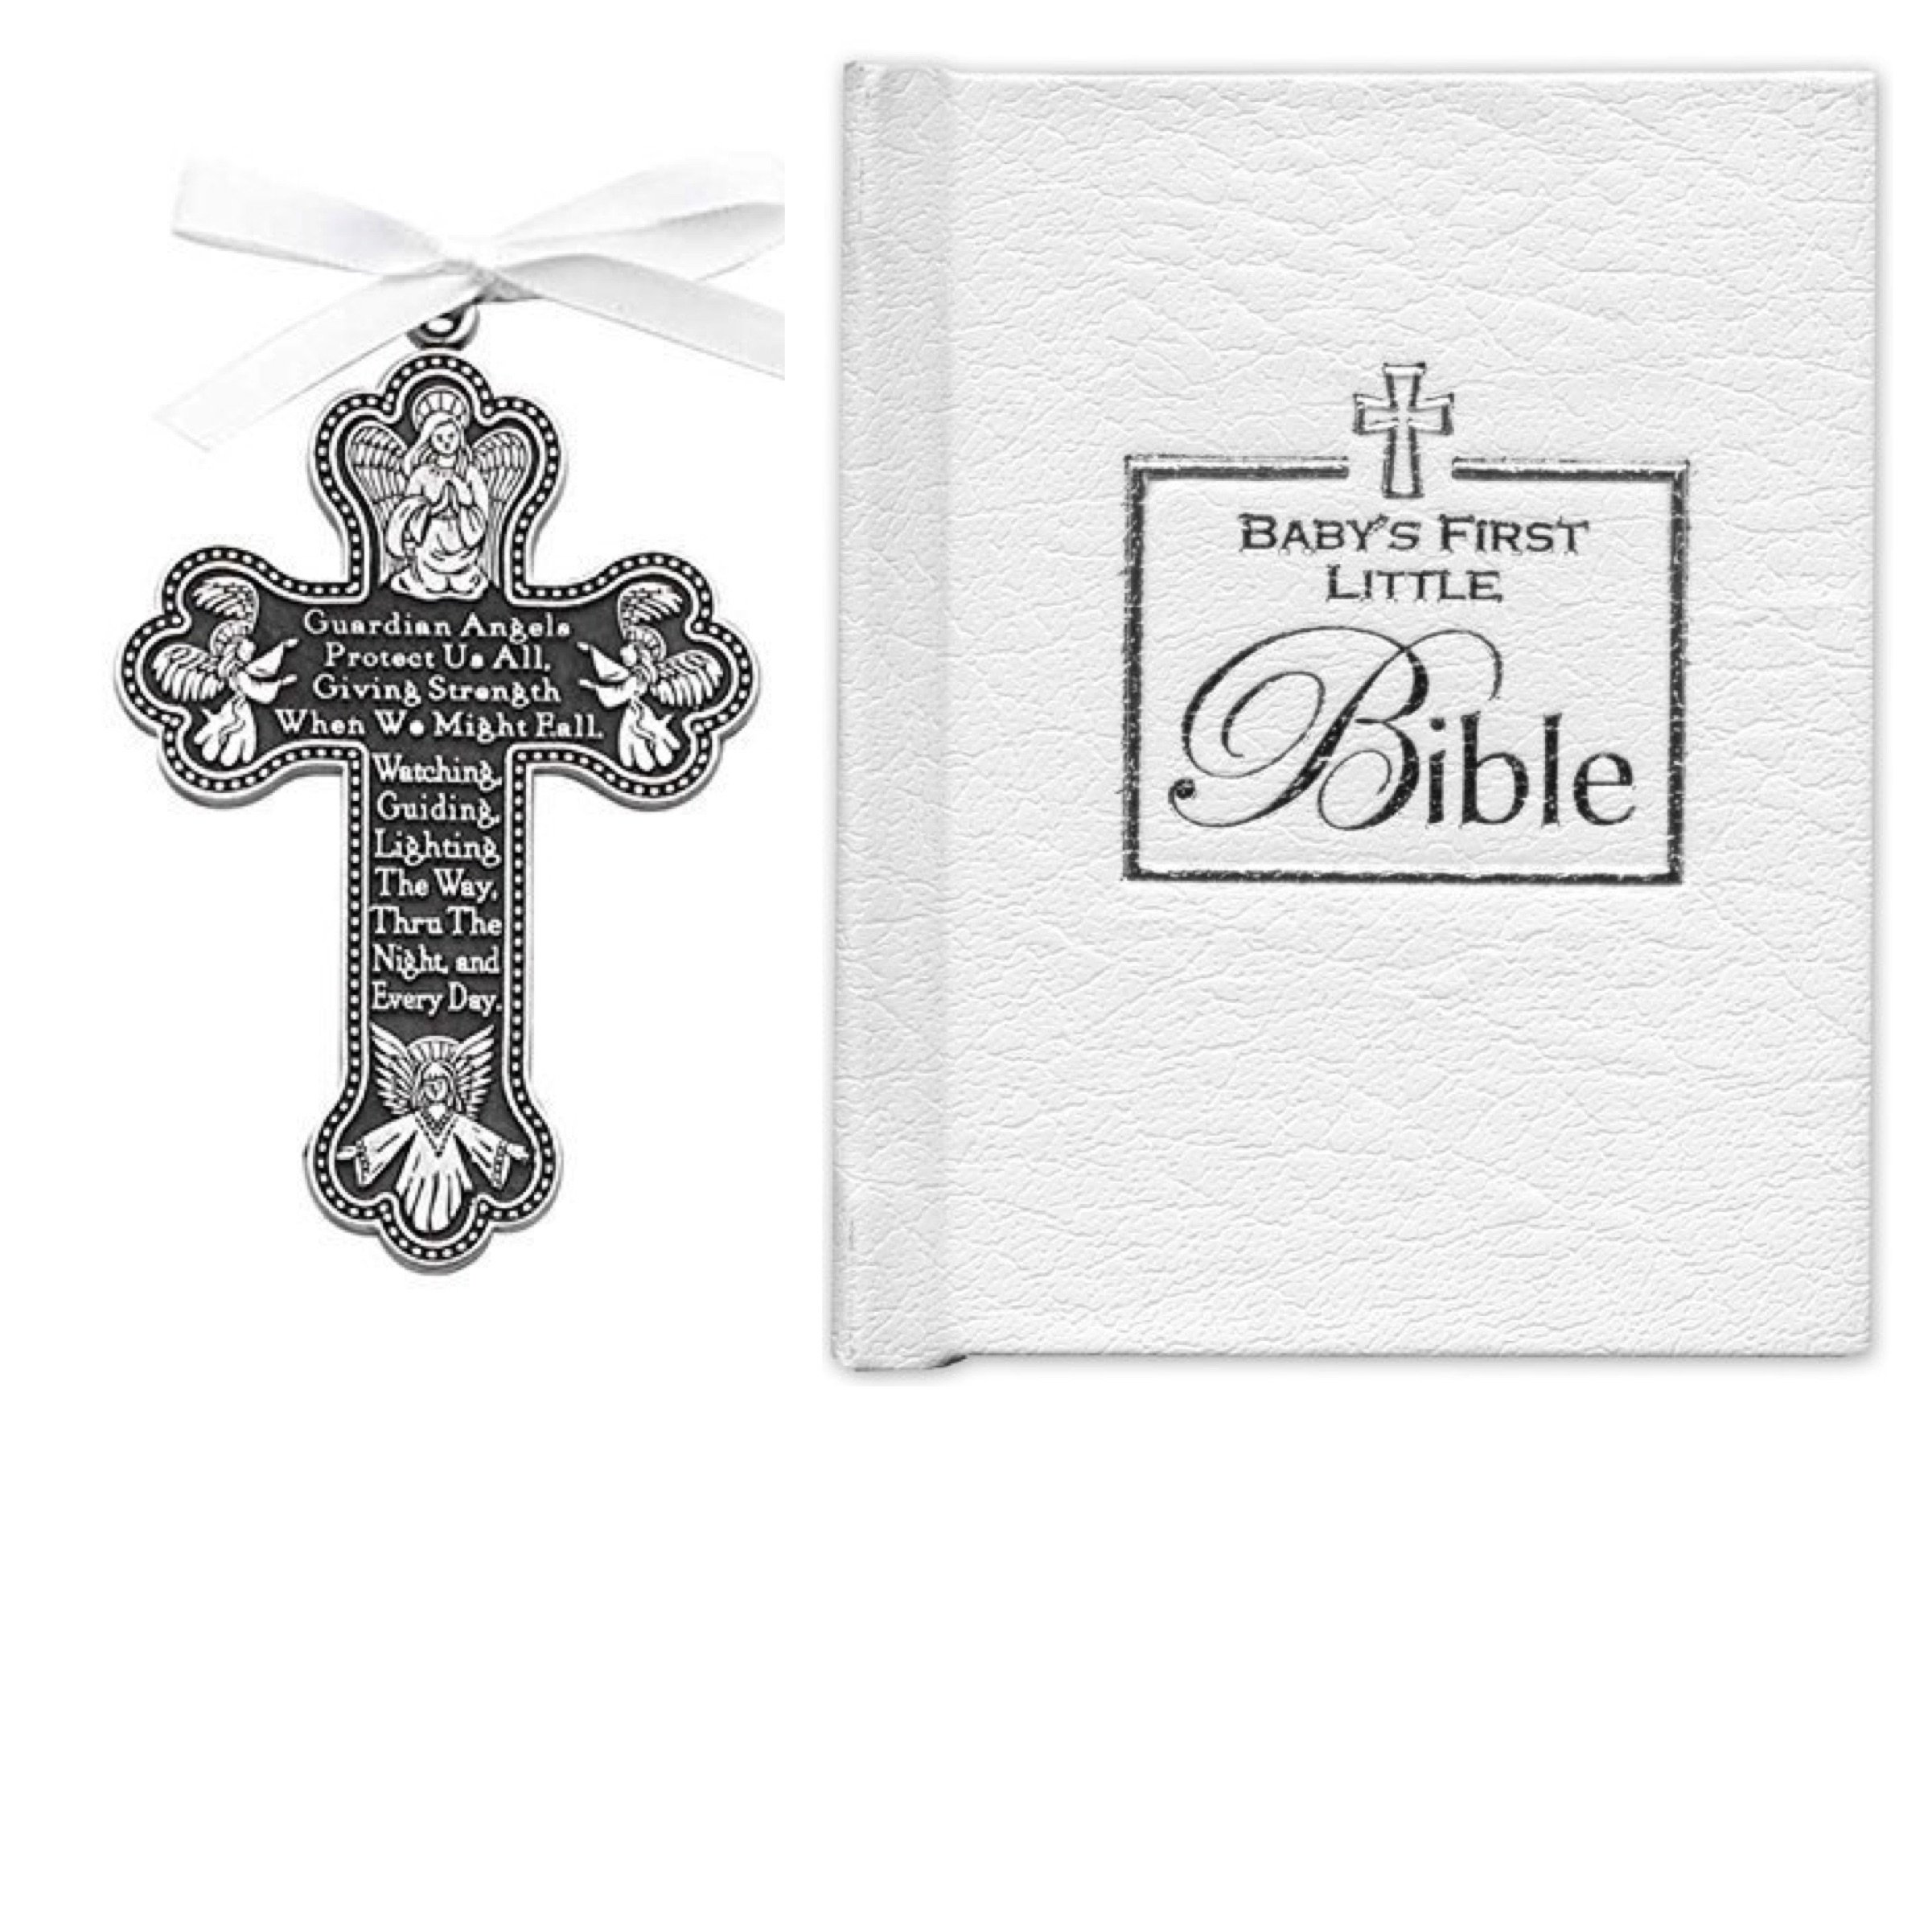 BABY'S Gift Set - First Little Bible & CRIB CROSS - BOY or Girl - Gender Neutral - Bless This Child - BAPTISM Christening BOXED WHITE Ribbon